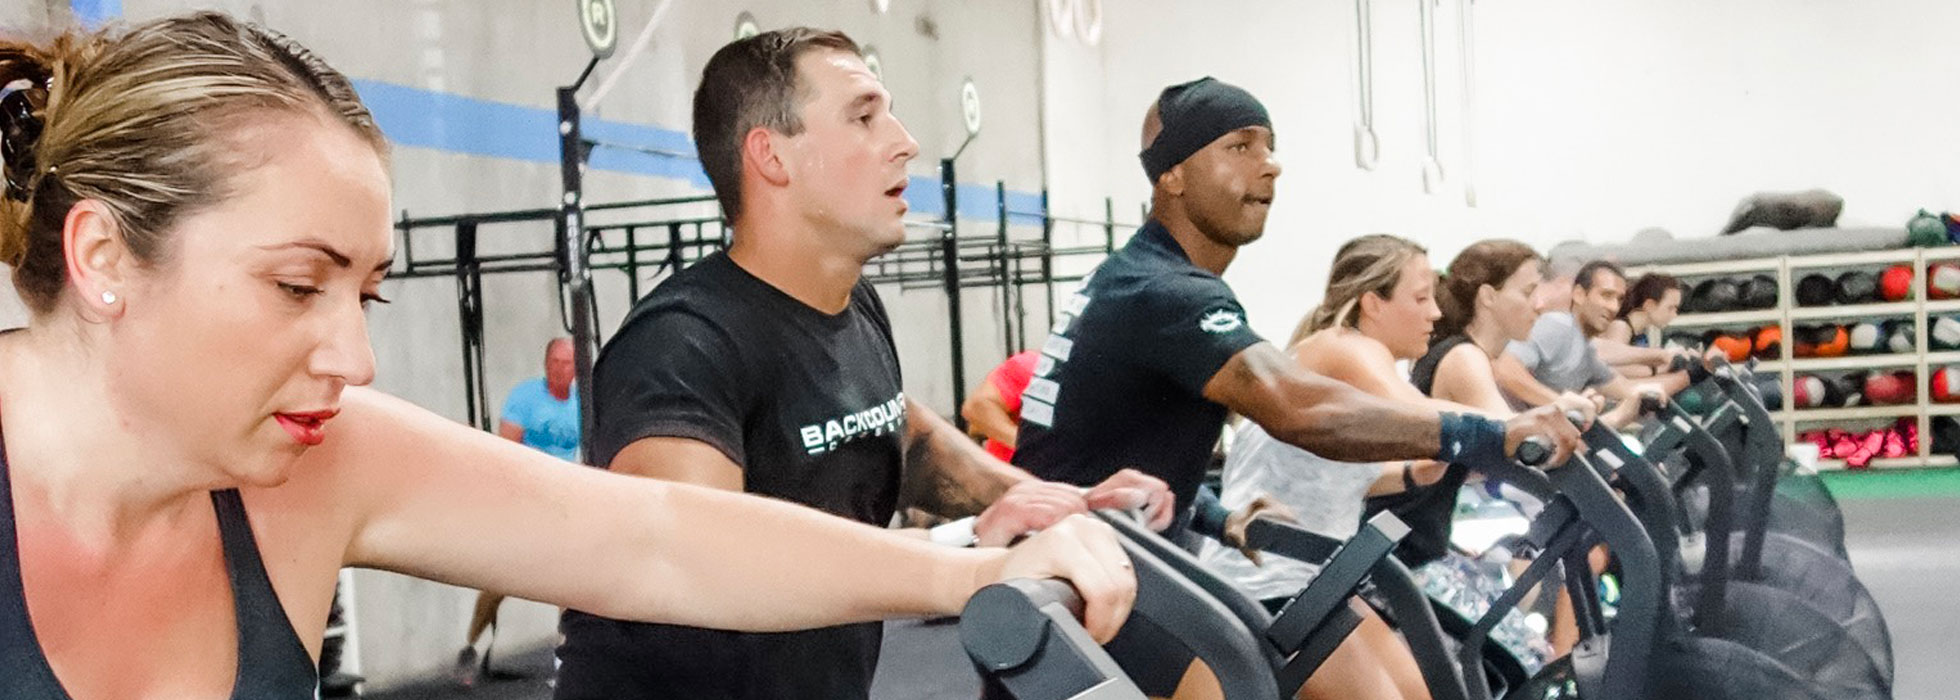 Endurance Fitness Classes in Highlands Ranch CO